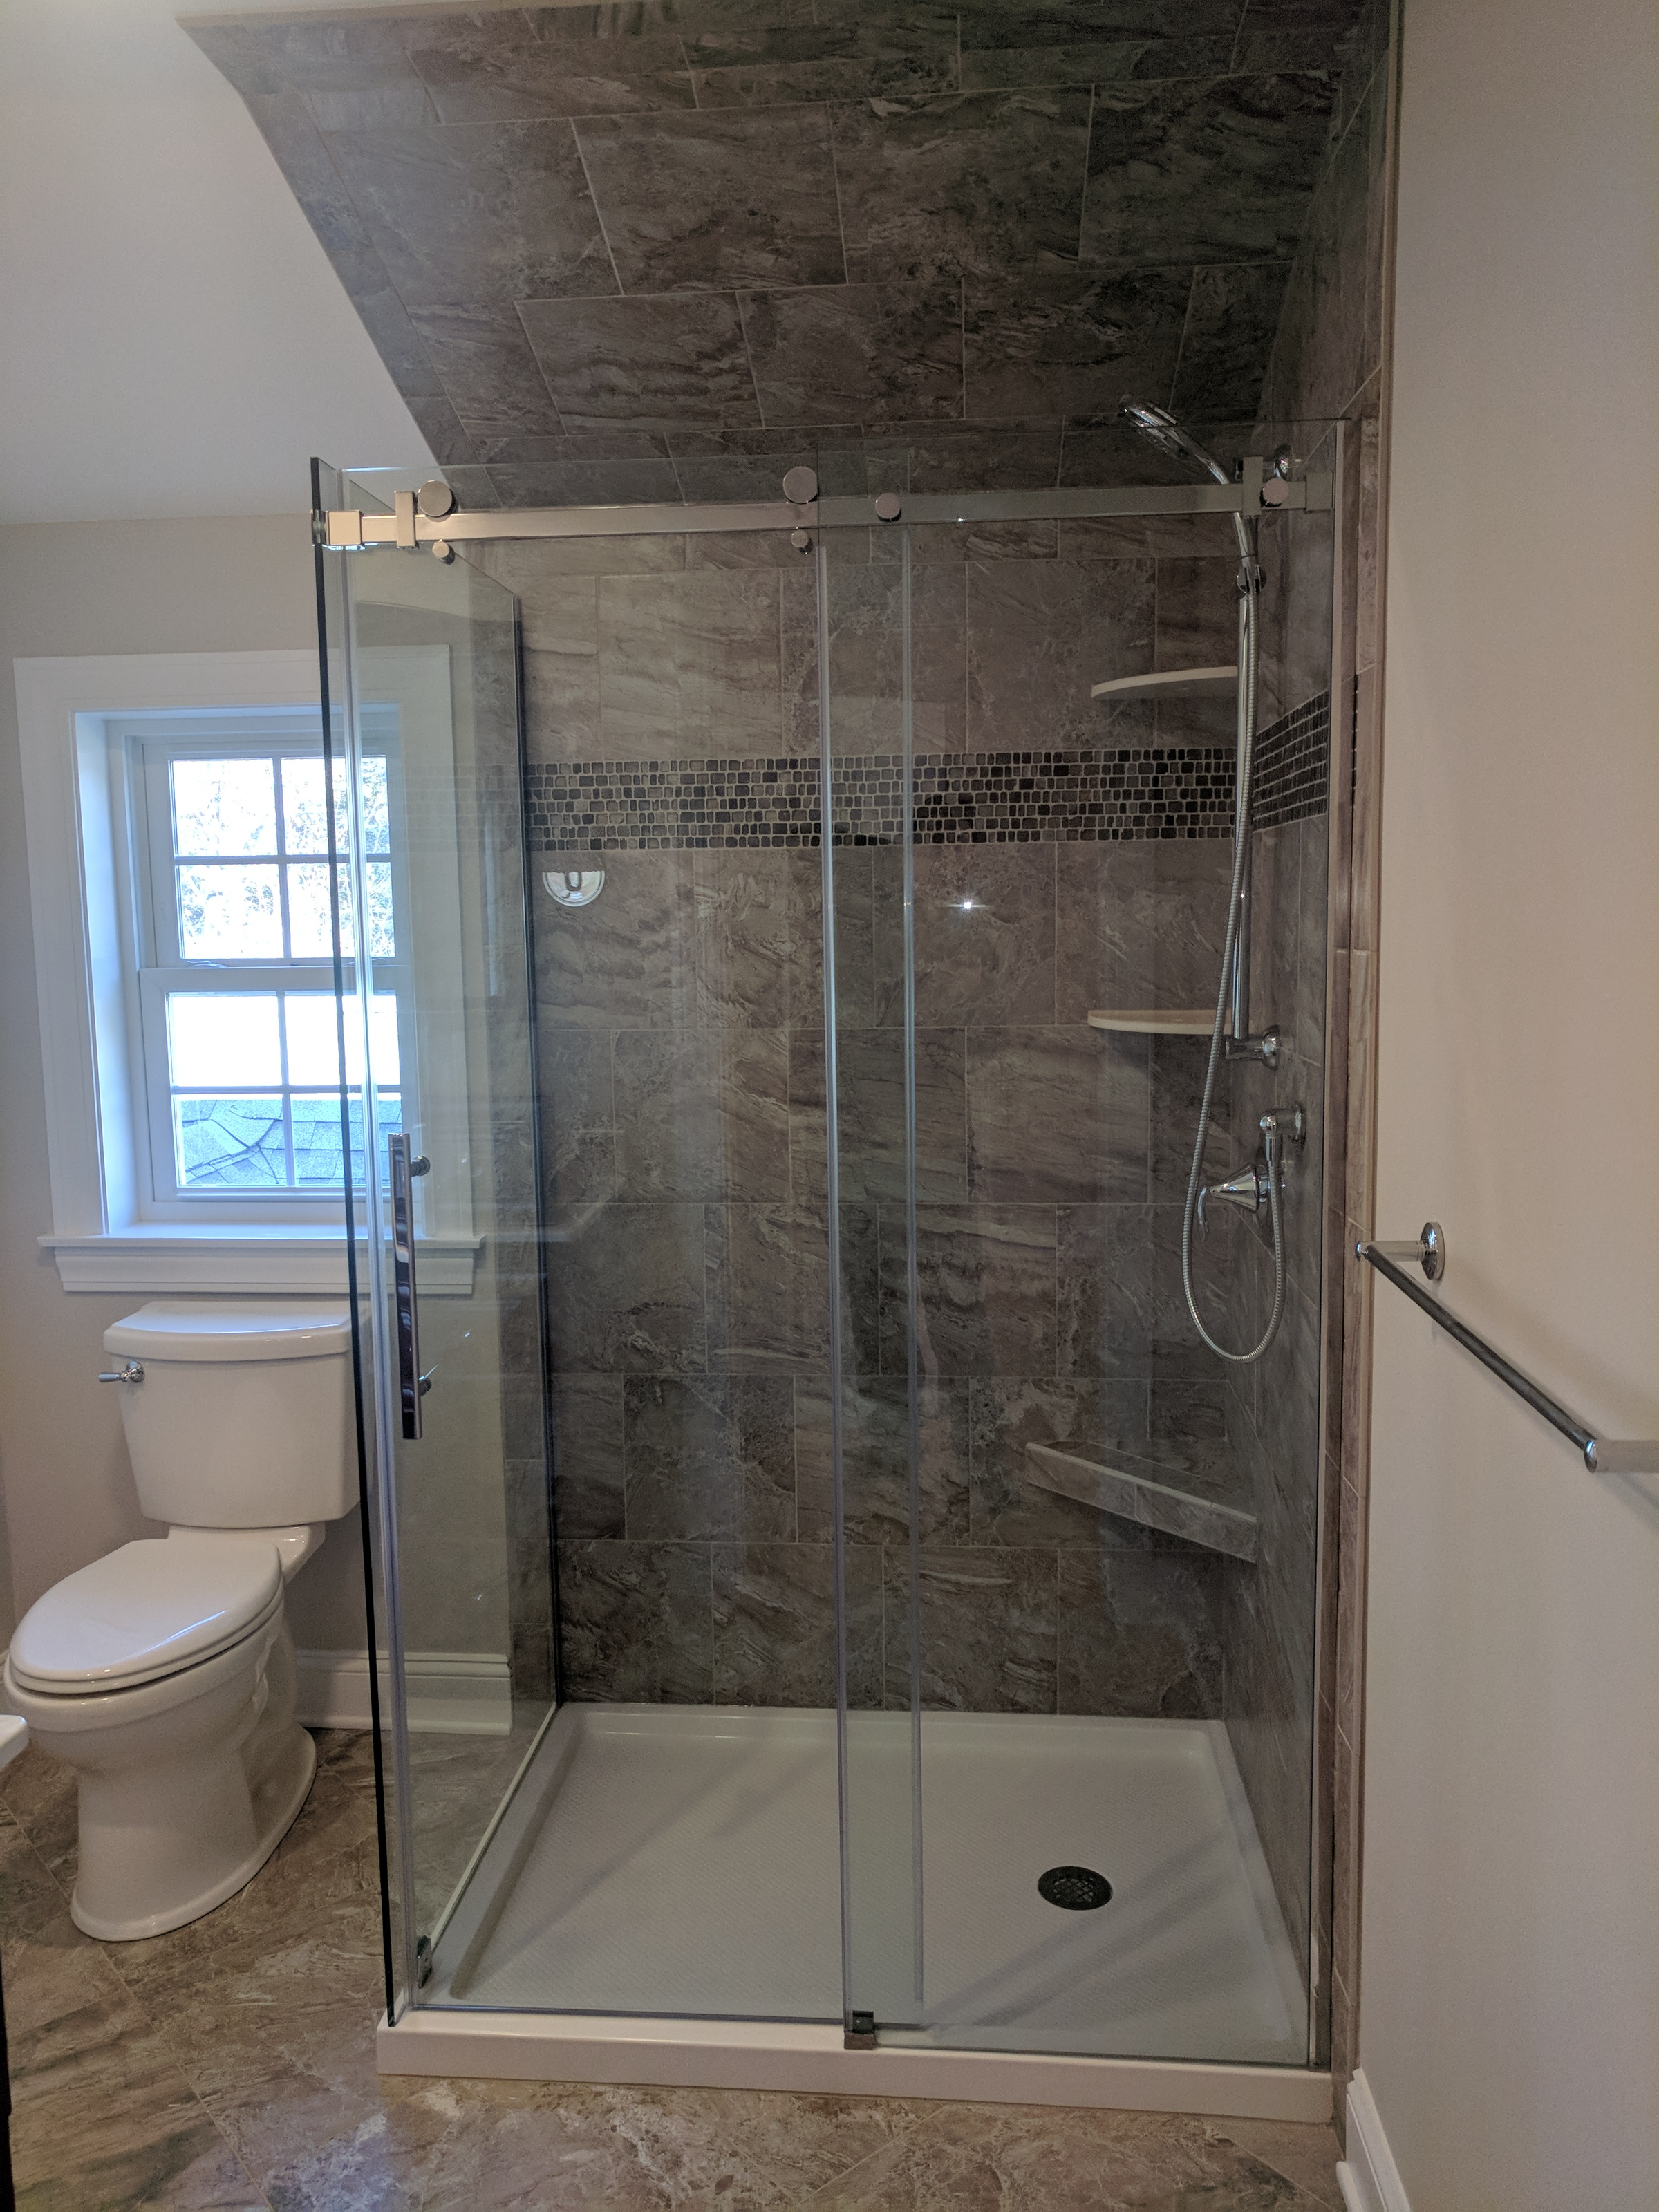 The additional full bath upstairs